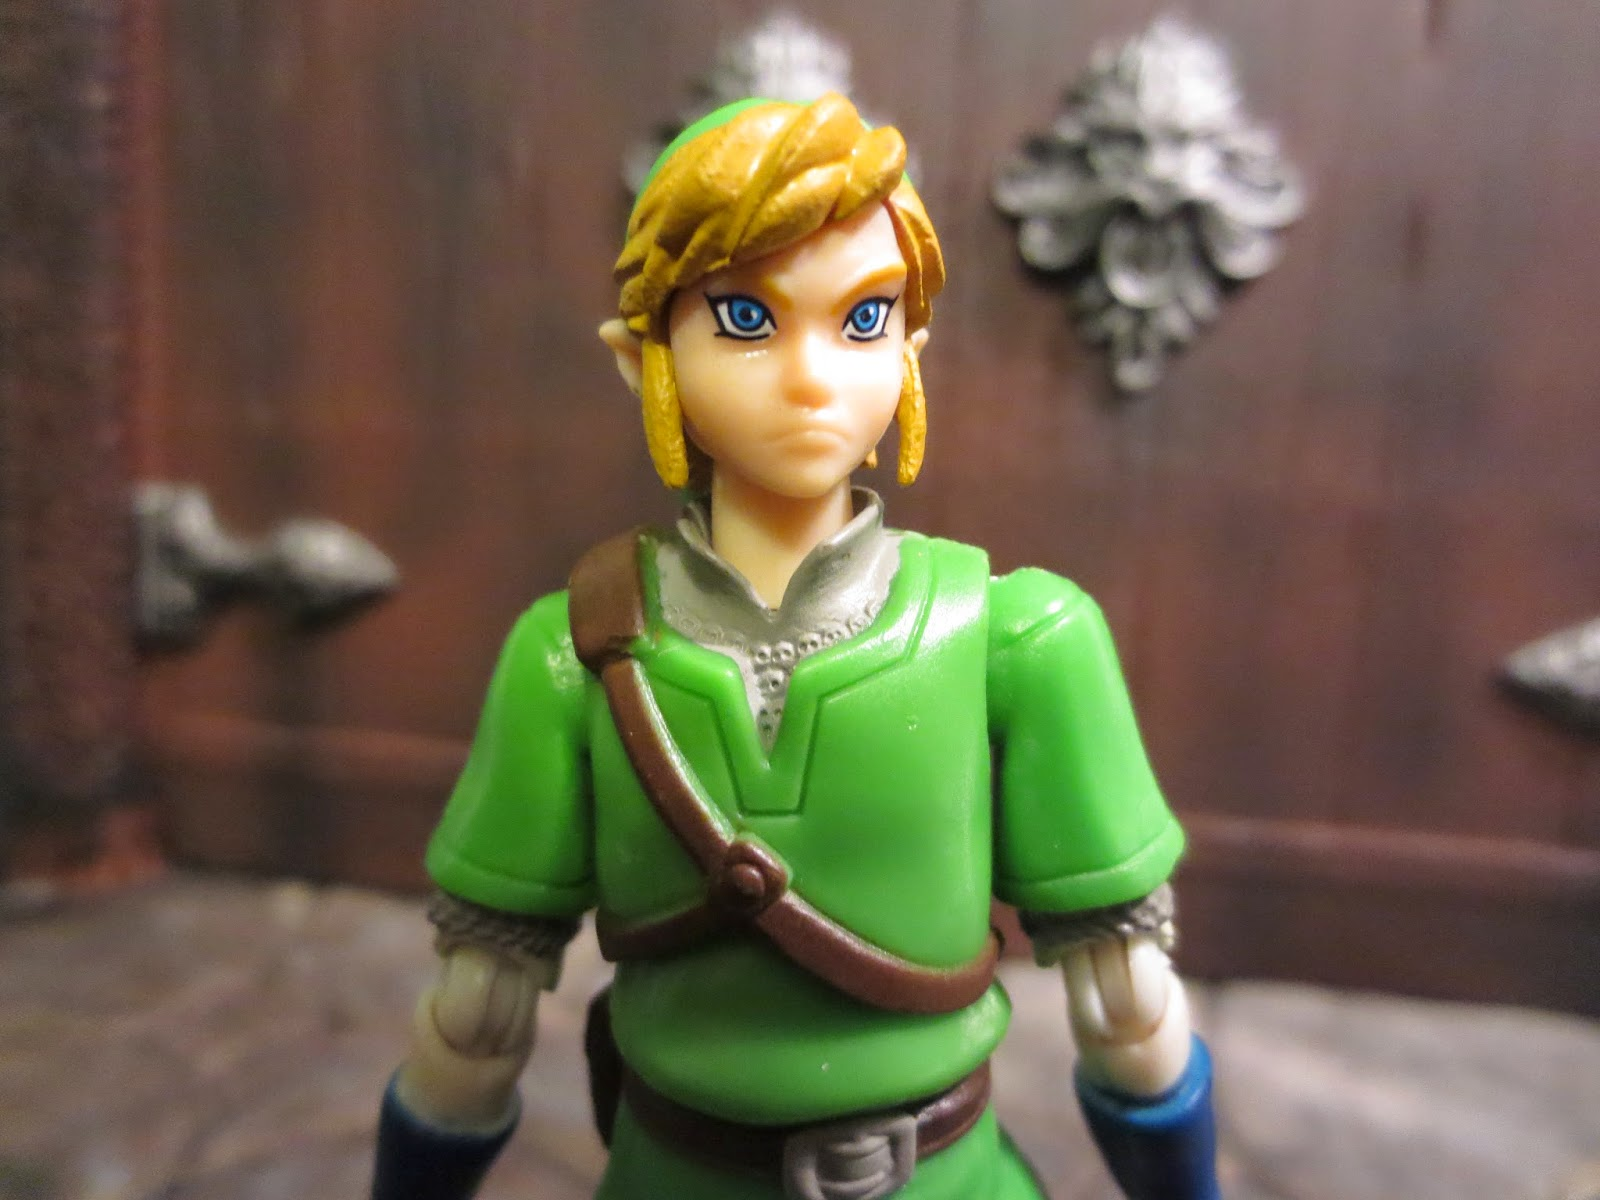 Action Figure Barbecue Action Figure Review Link From World Of Nintendo By Jakks Pacific